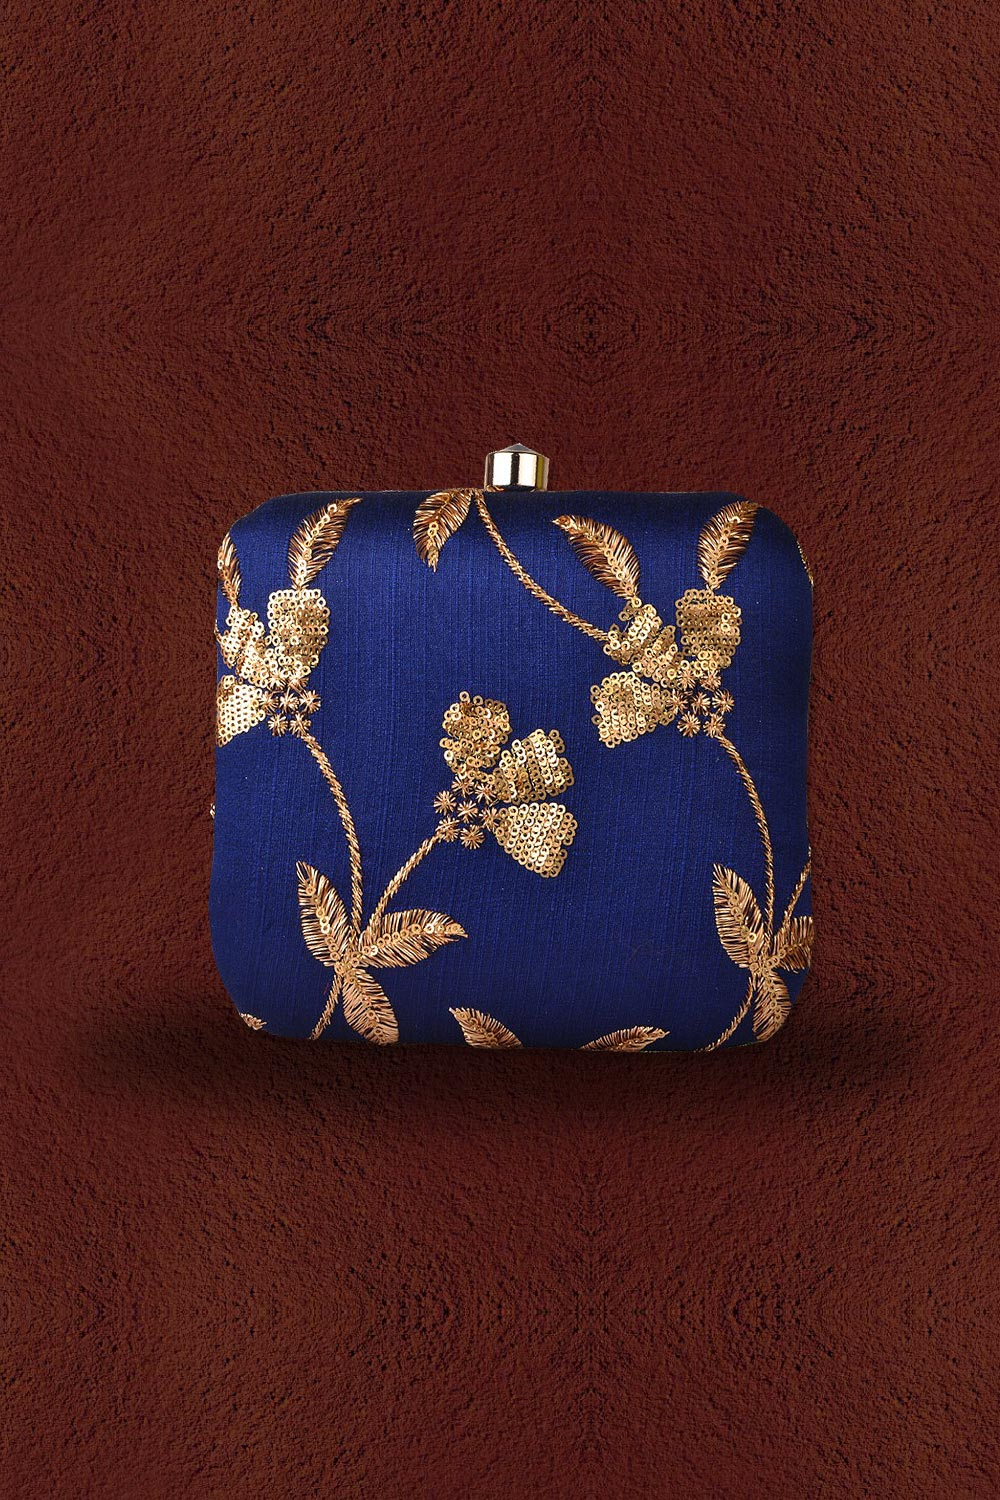 Royal Blue Sequin Embroidered Clutch